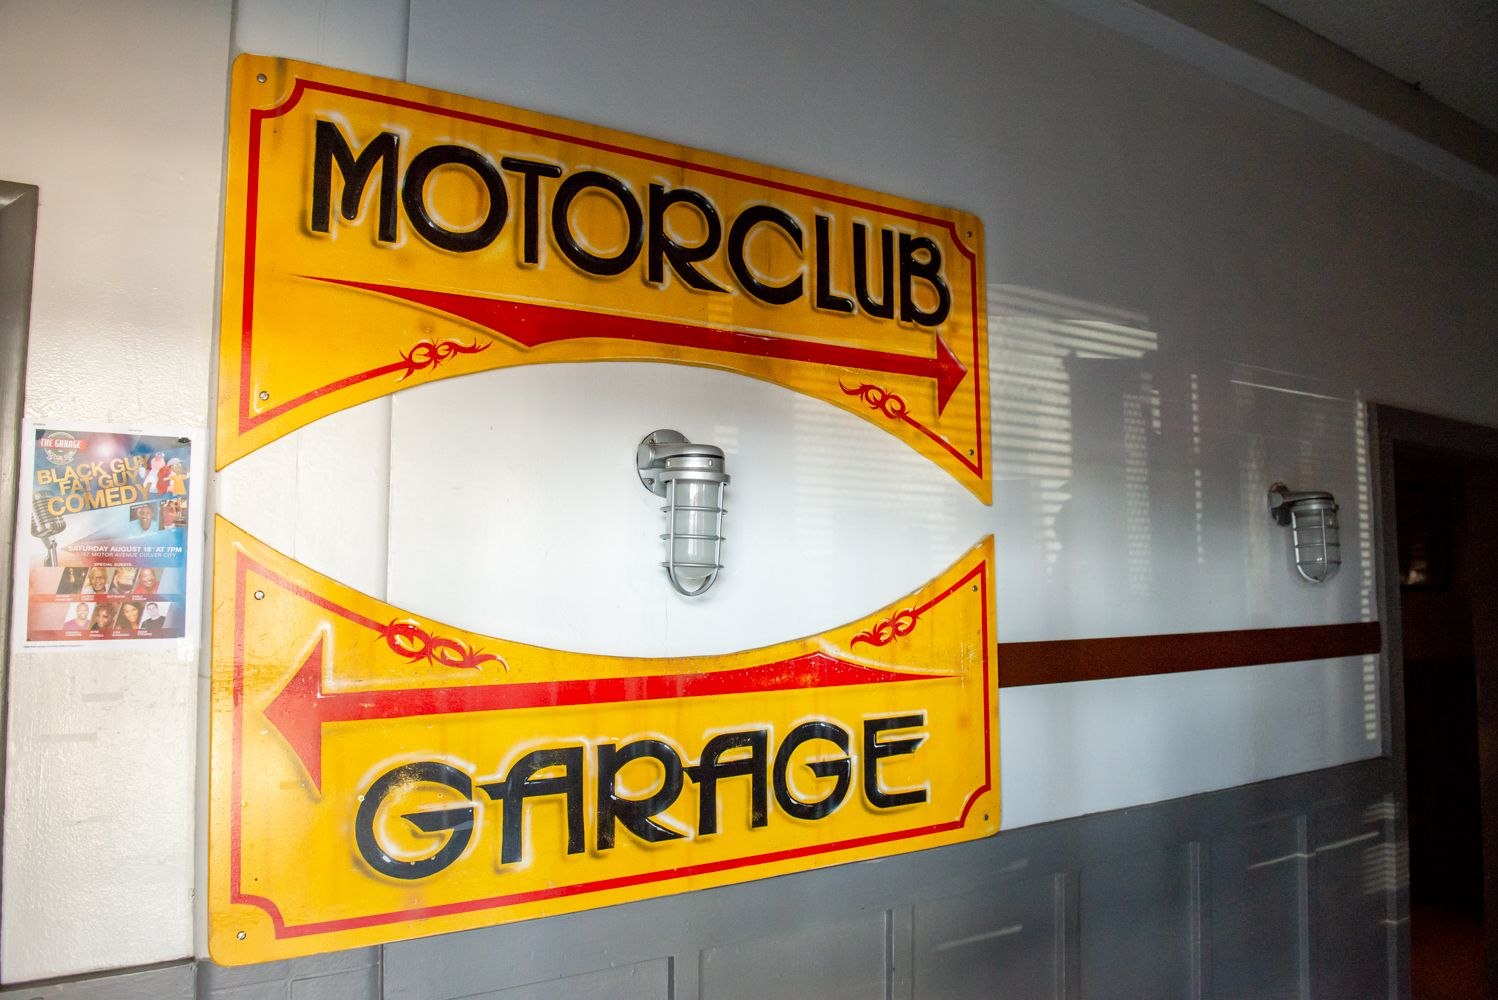 The Garage on Motor